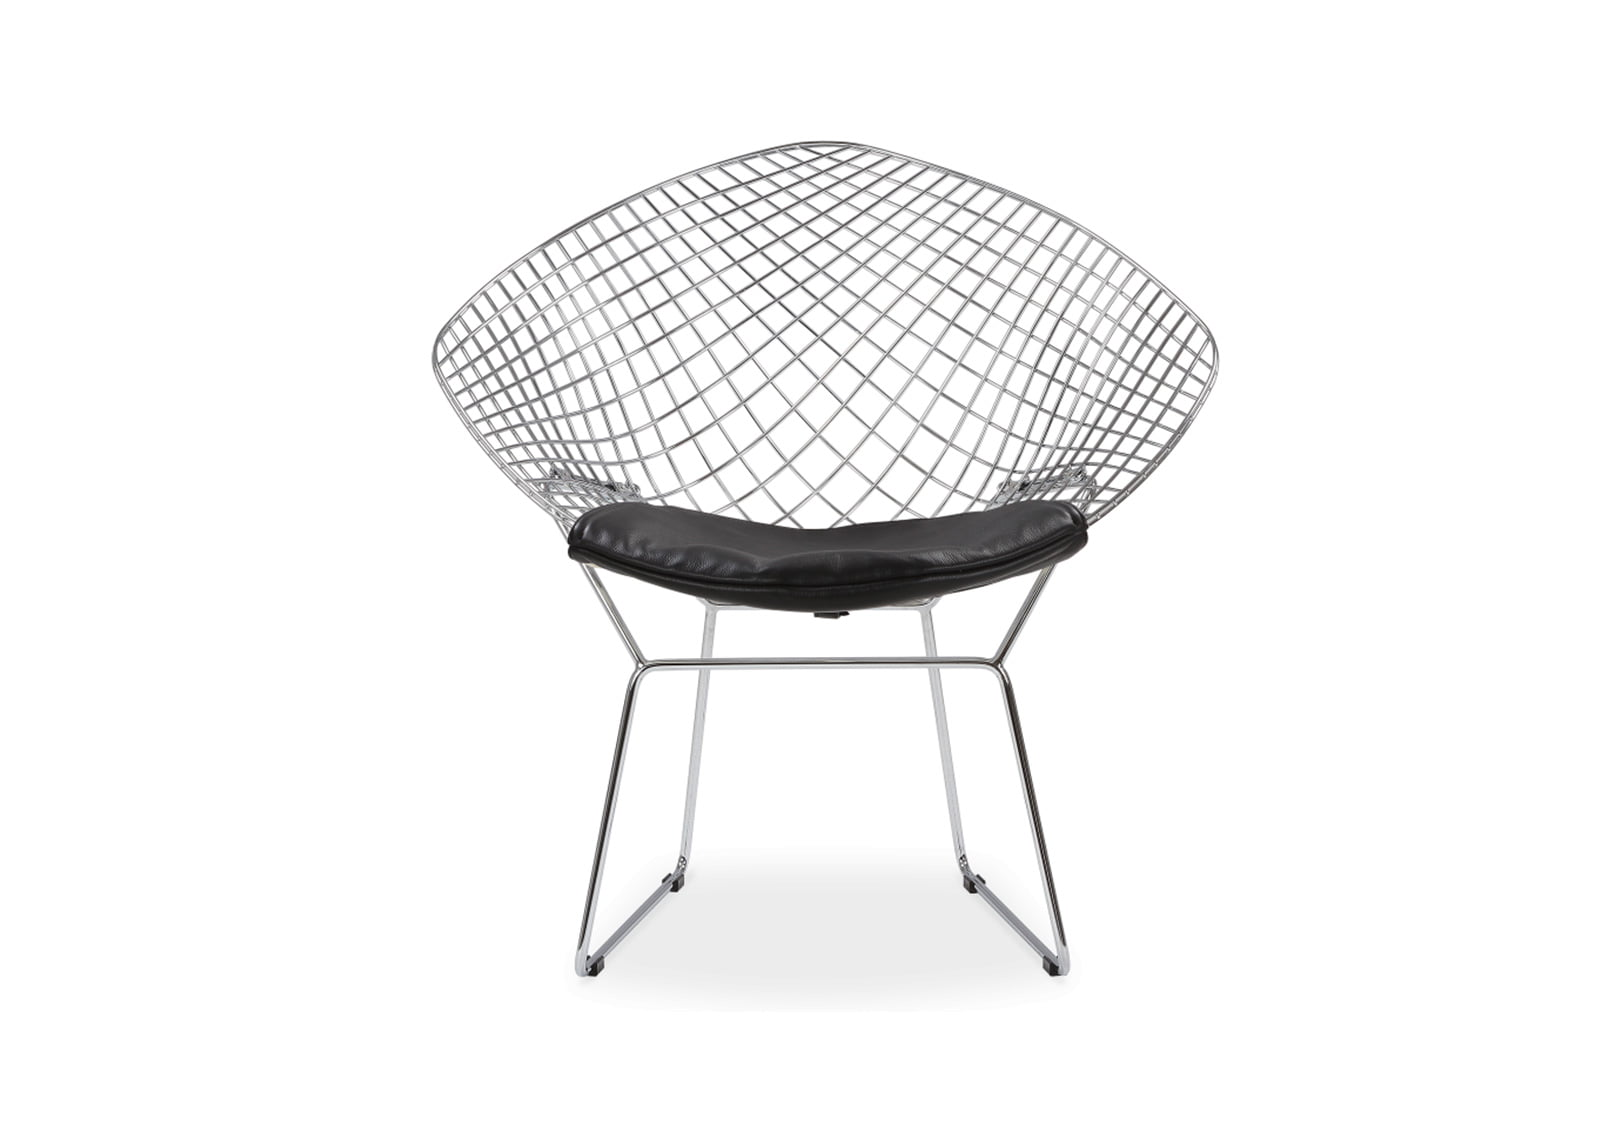 bertoia style chair white folding for less harry mid century modern furniture